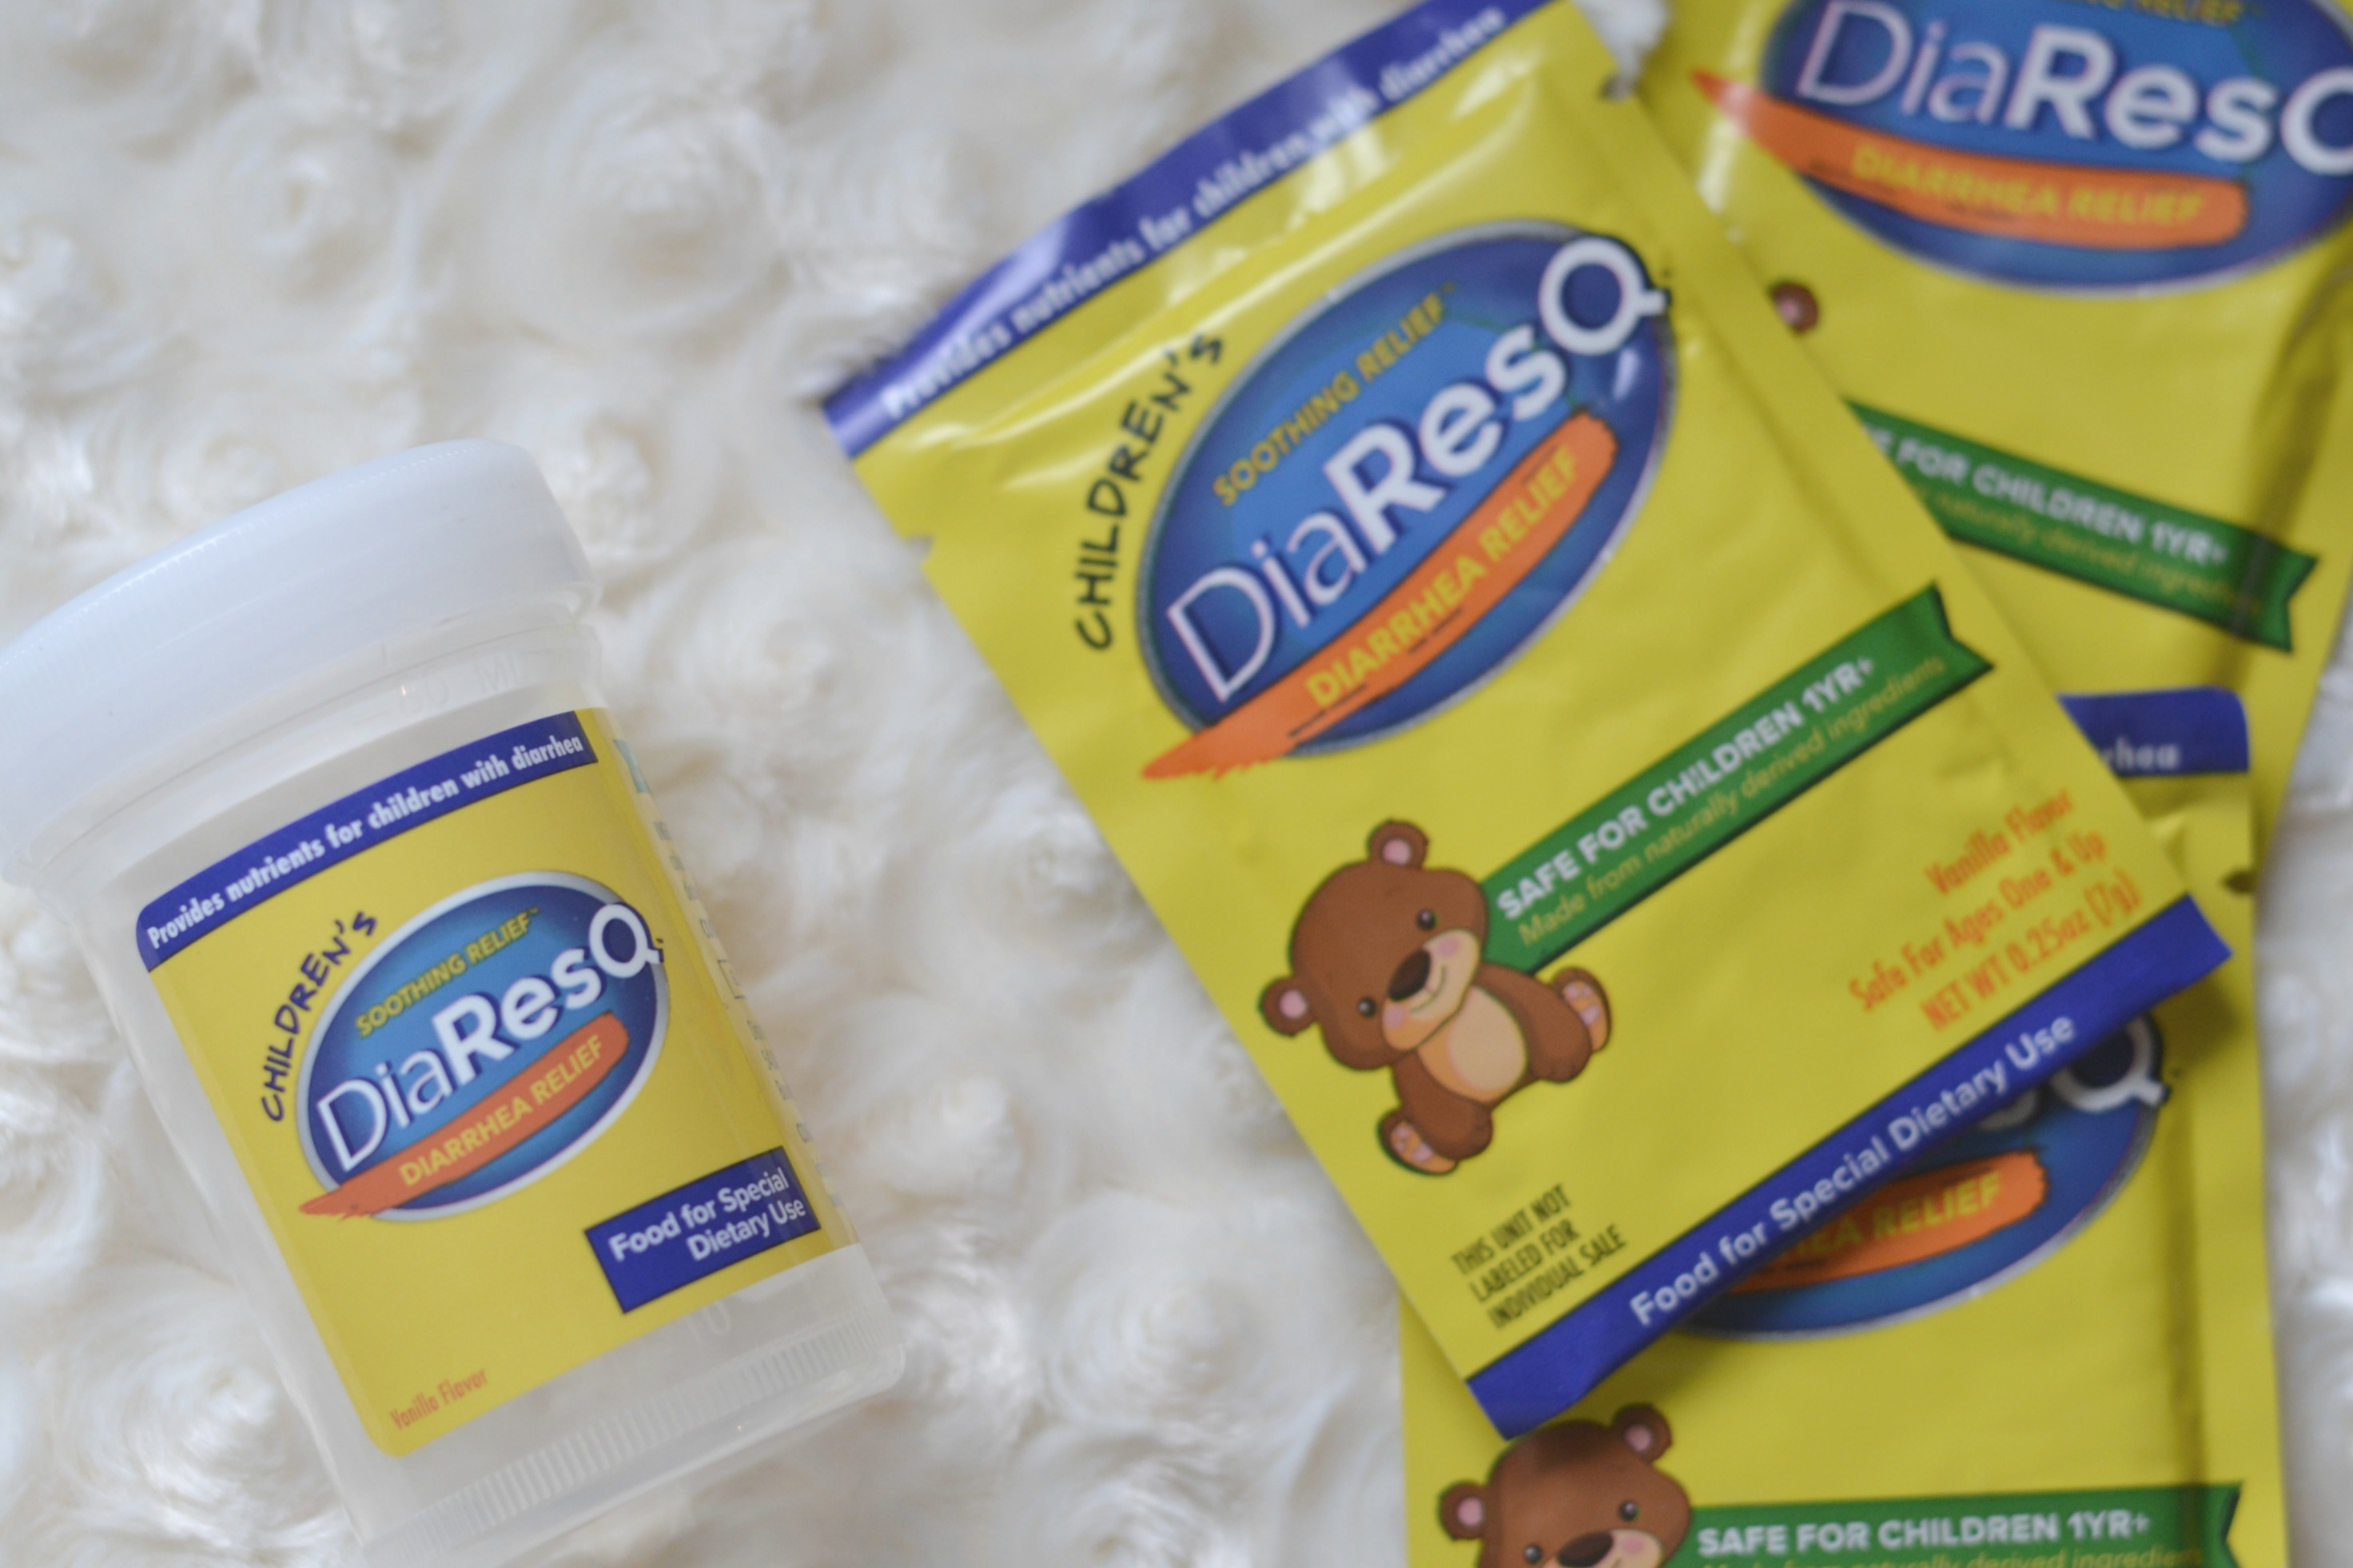 How to Deal with Diarrhea in Children using natural remedies. DiaResQ® is a natural diarrhea medicine that will stop diarrhea fast. How to Deal with Diarrhea in Children, DiaResQ, Diarrhea, Children's diarrhea, Diarrhea in children, Diarrhea medicine, Safe diarrhea medicine, Natural diarrhea medicine, Stop diarrhea, Stop diarrhea naturally, Stop diarrhea fast, How to stop diarrhea, How to stop diarrhea fast, How to stop diarrhea in kids fast, How to stop diarrhea in toddlers,